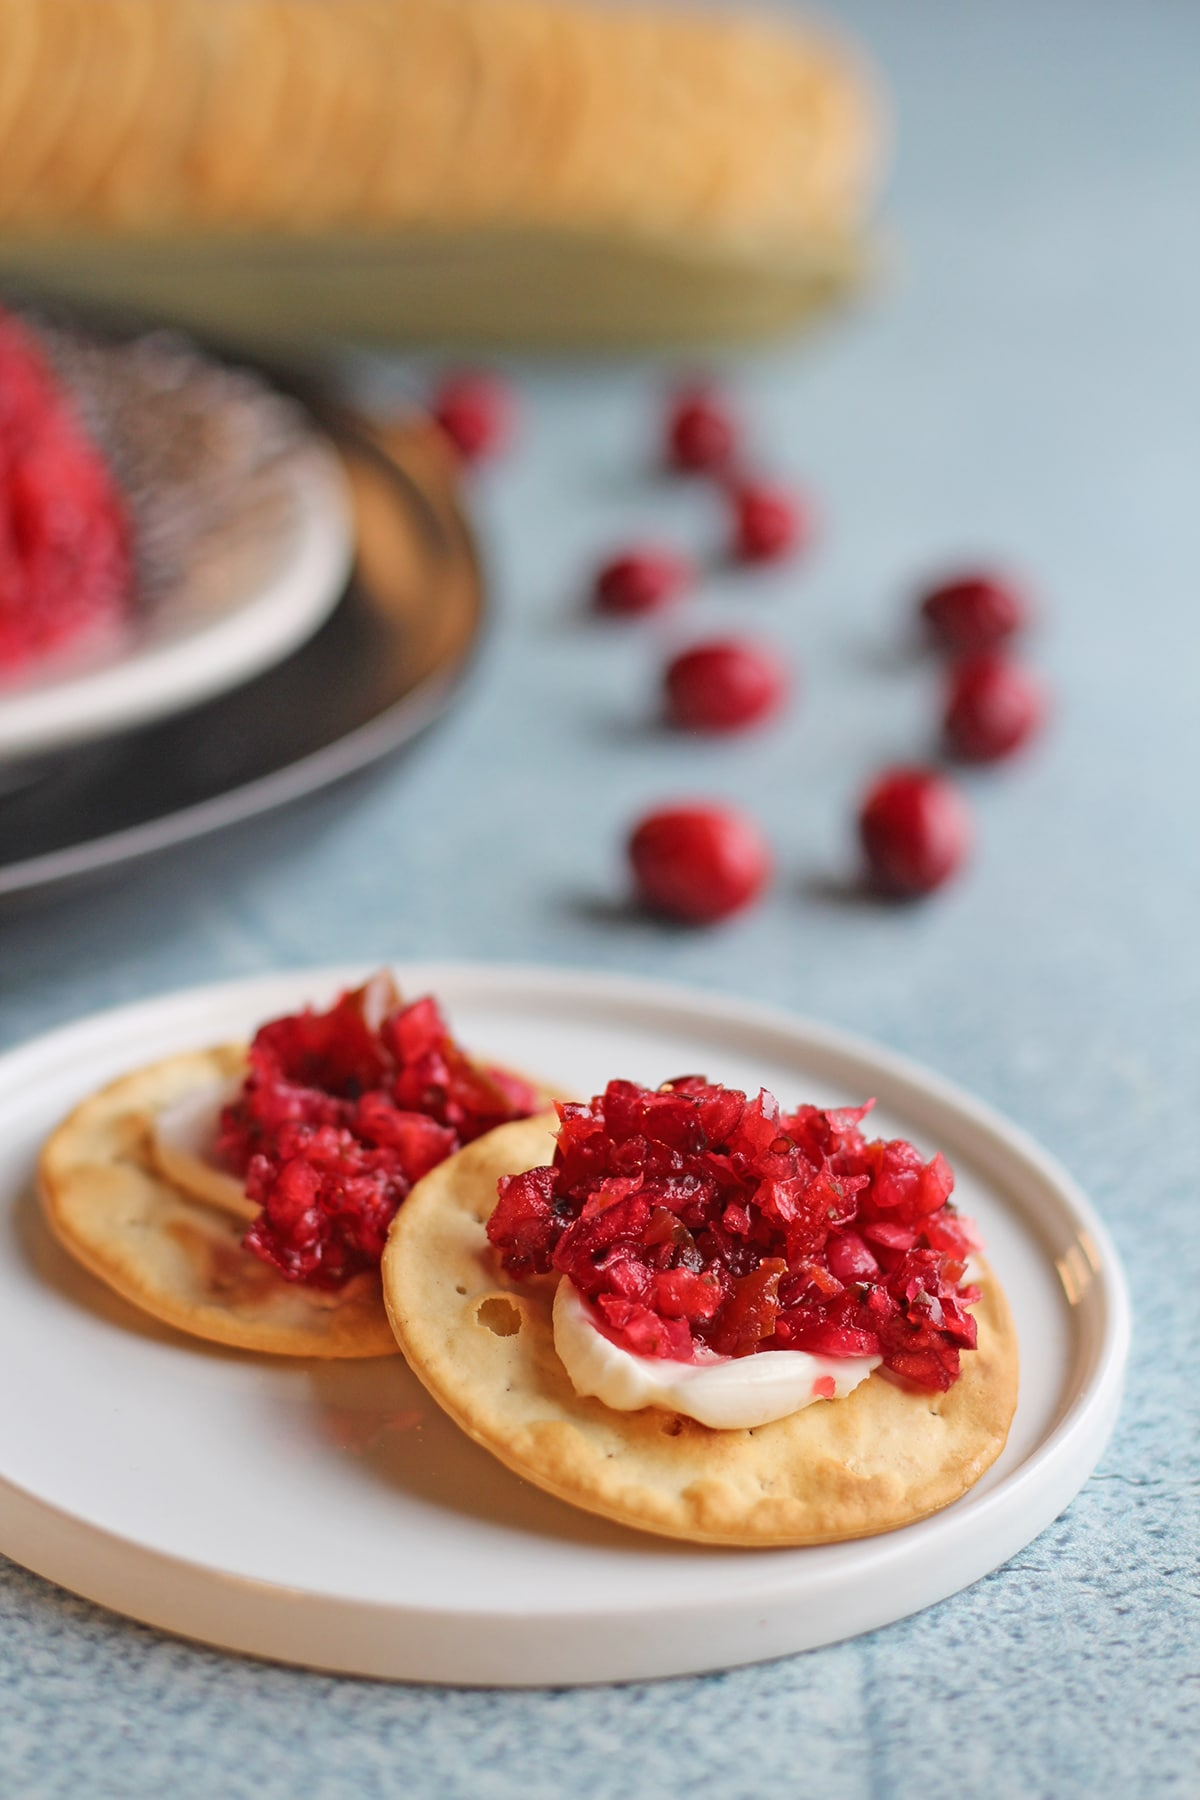 Crackers slathered with cranberry salsa and non-dairy cream cheese.